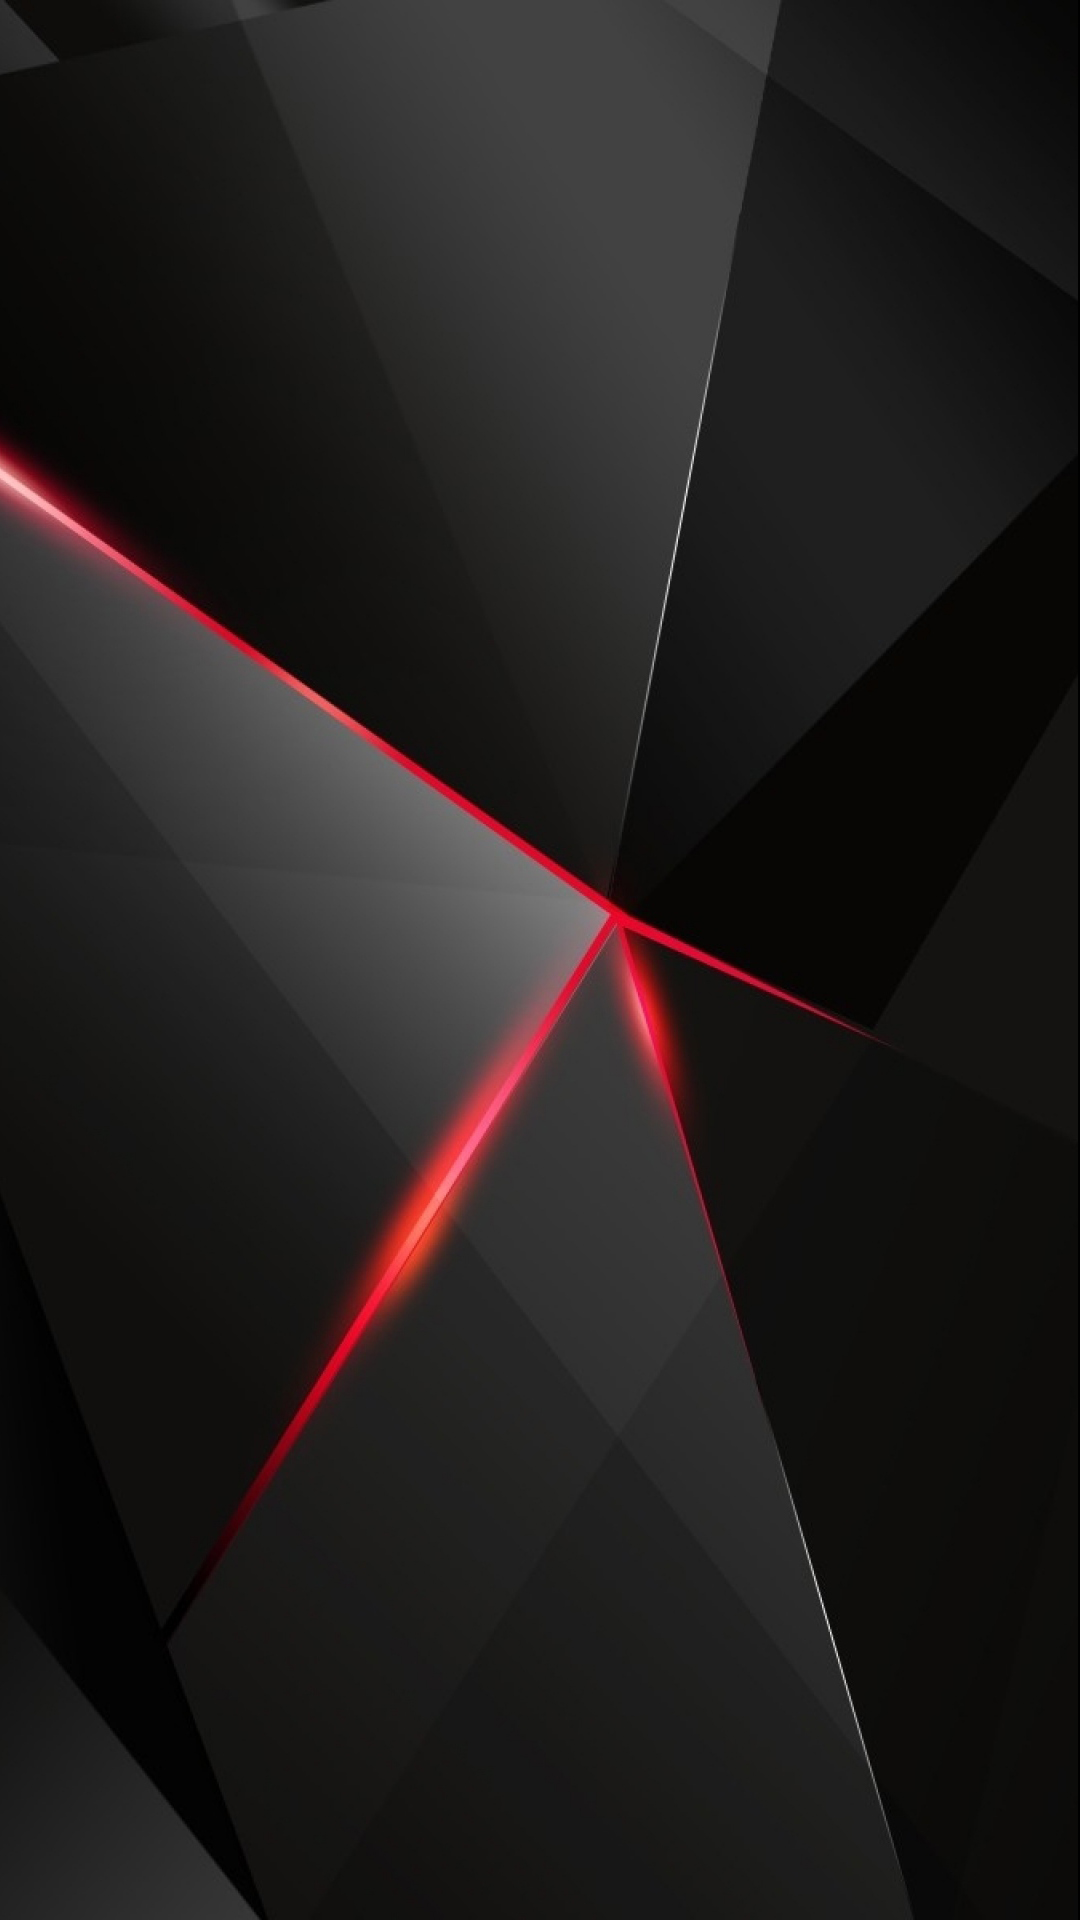 Nexus Black HD Android Wallpaper